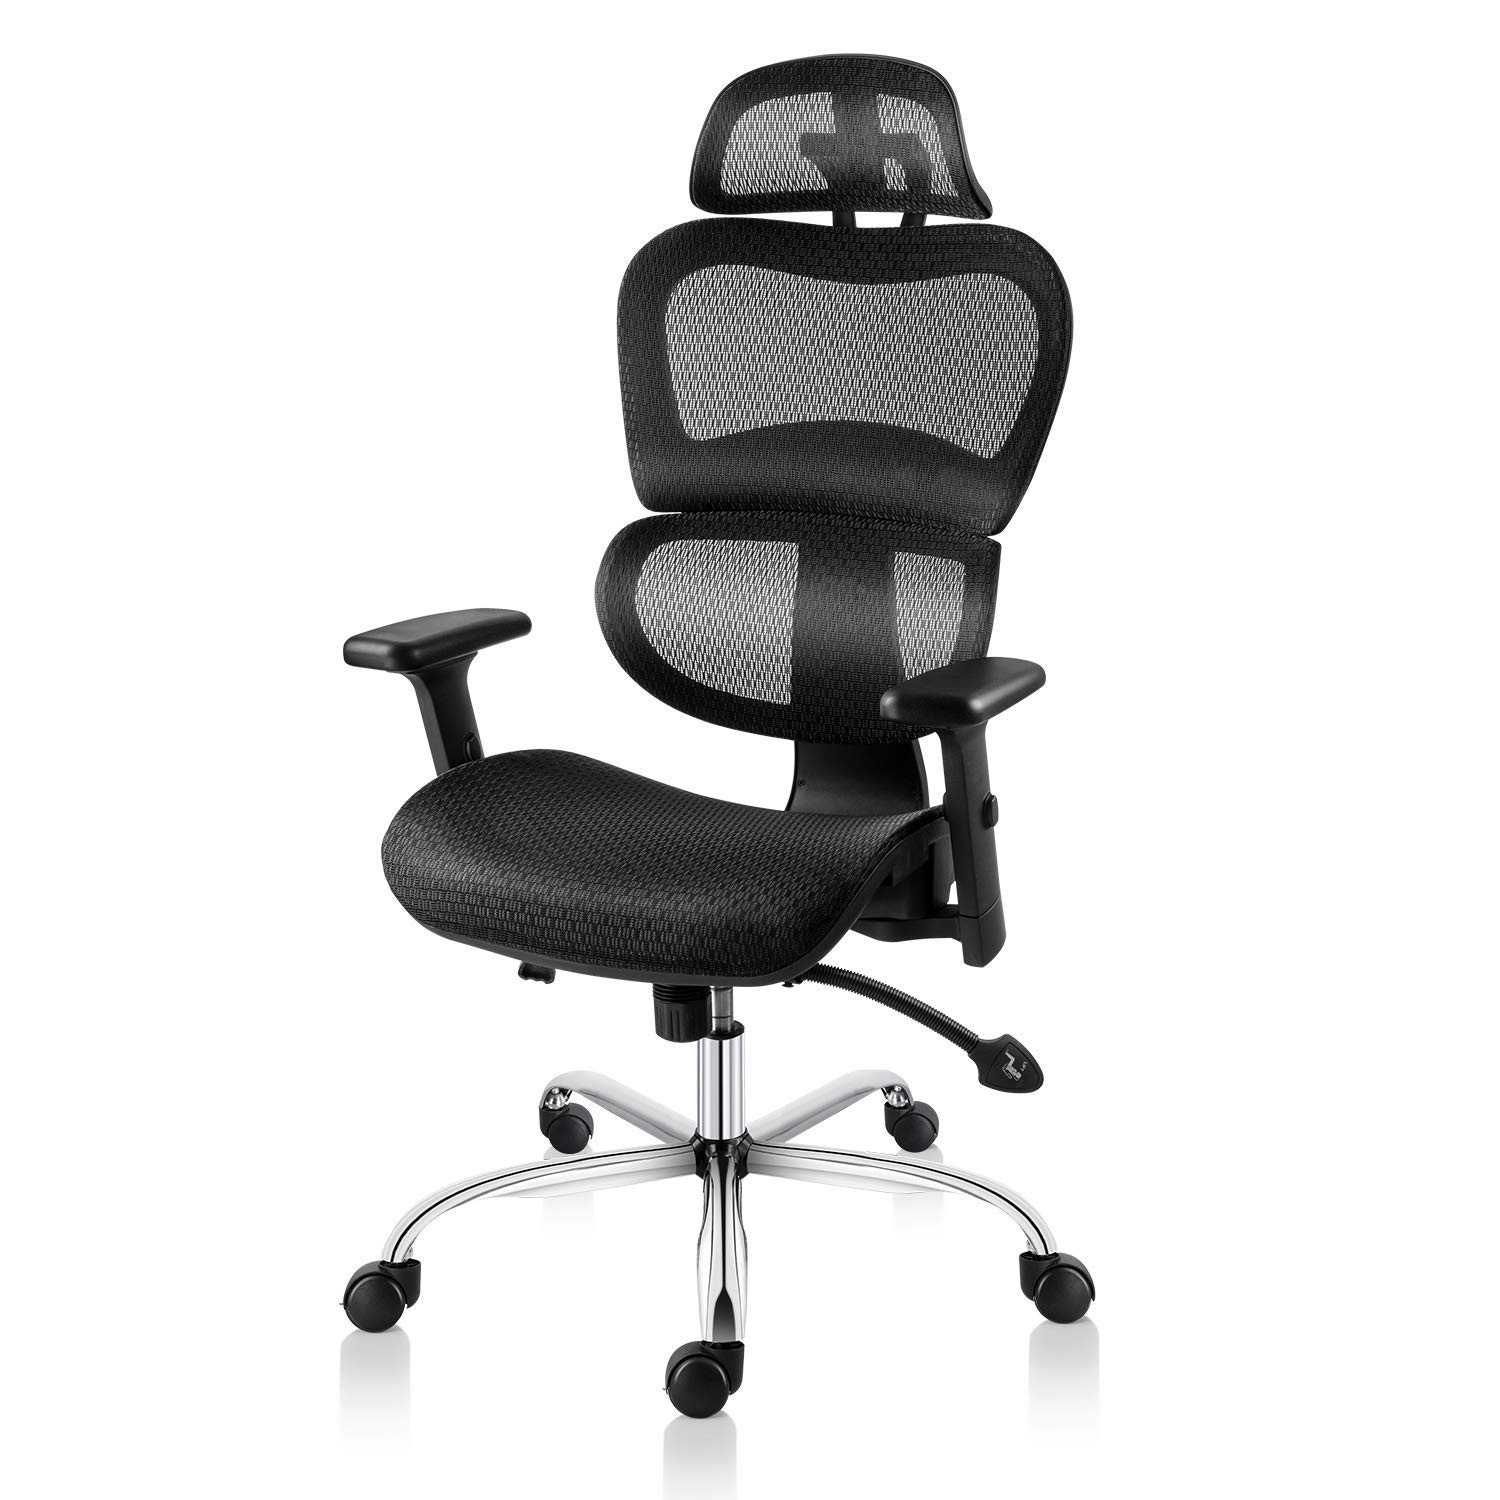 Smugdesk 1388FK Ergonomic High Back Mesh Adjustable Headrest and Lumbar Support 3D Armrest Office Chair Standard